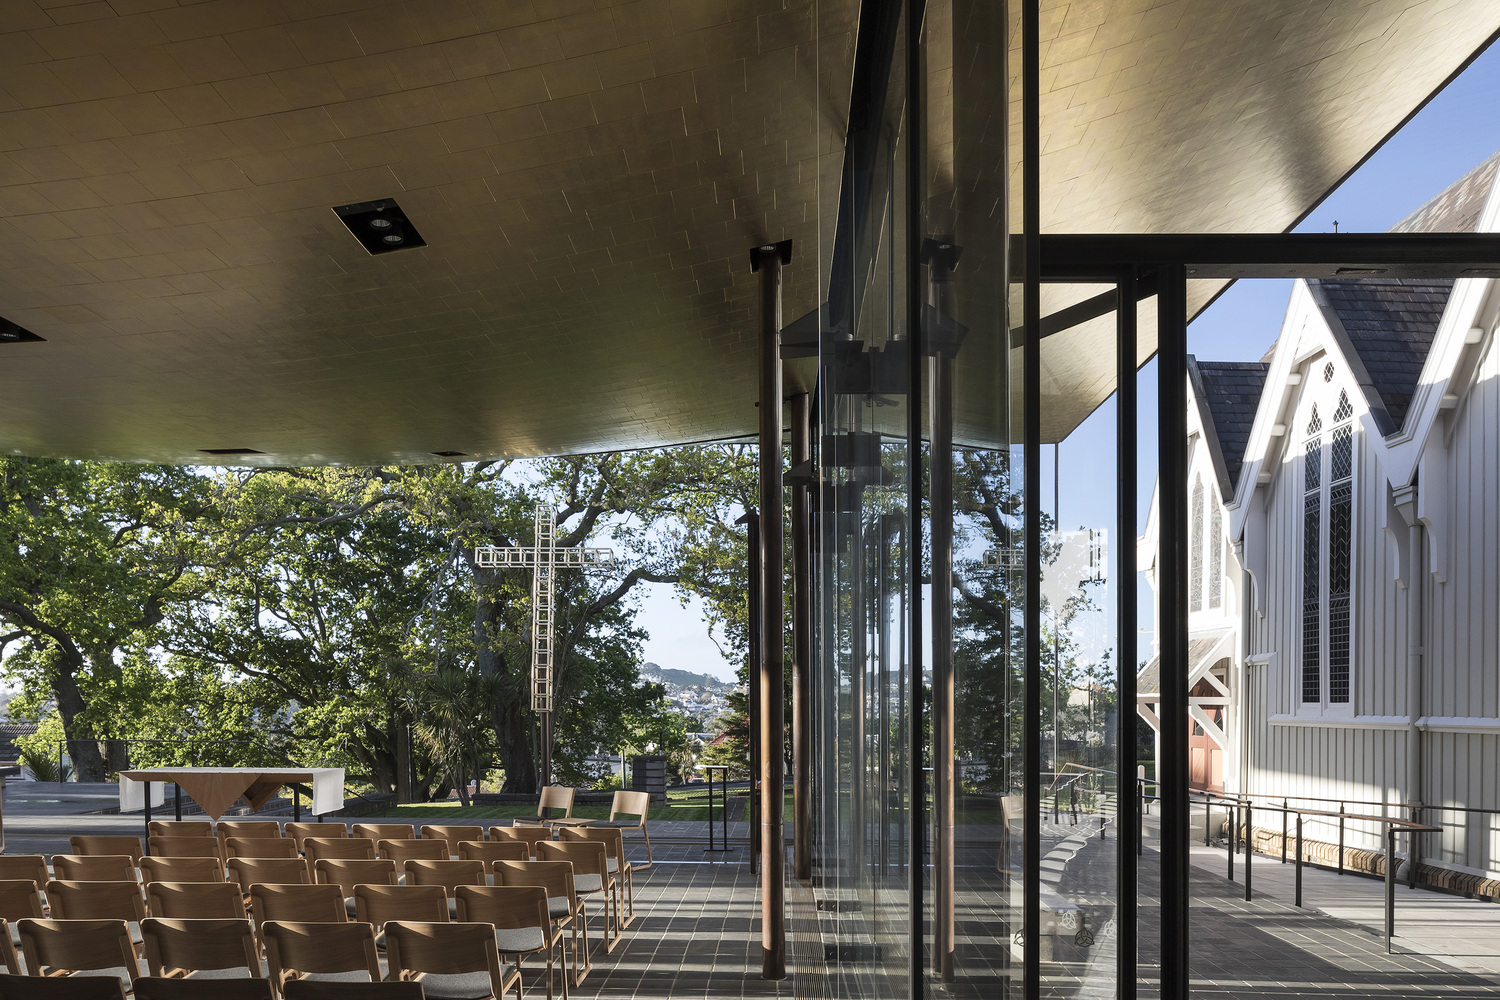 塞尔温主教教堂 Bishop Selwyn Chapel丨Fearon Hay Architects